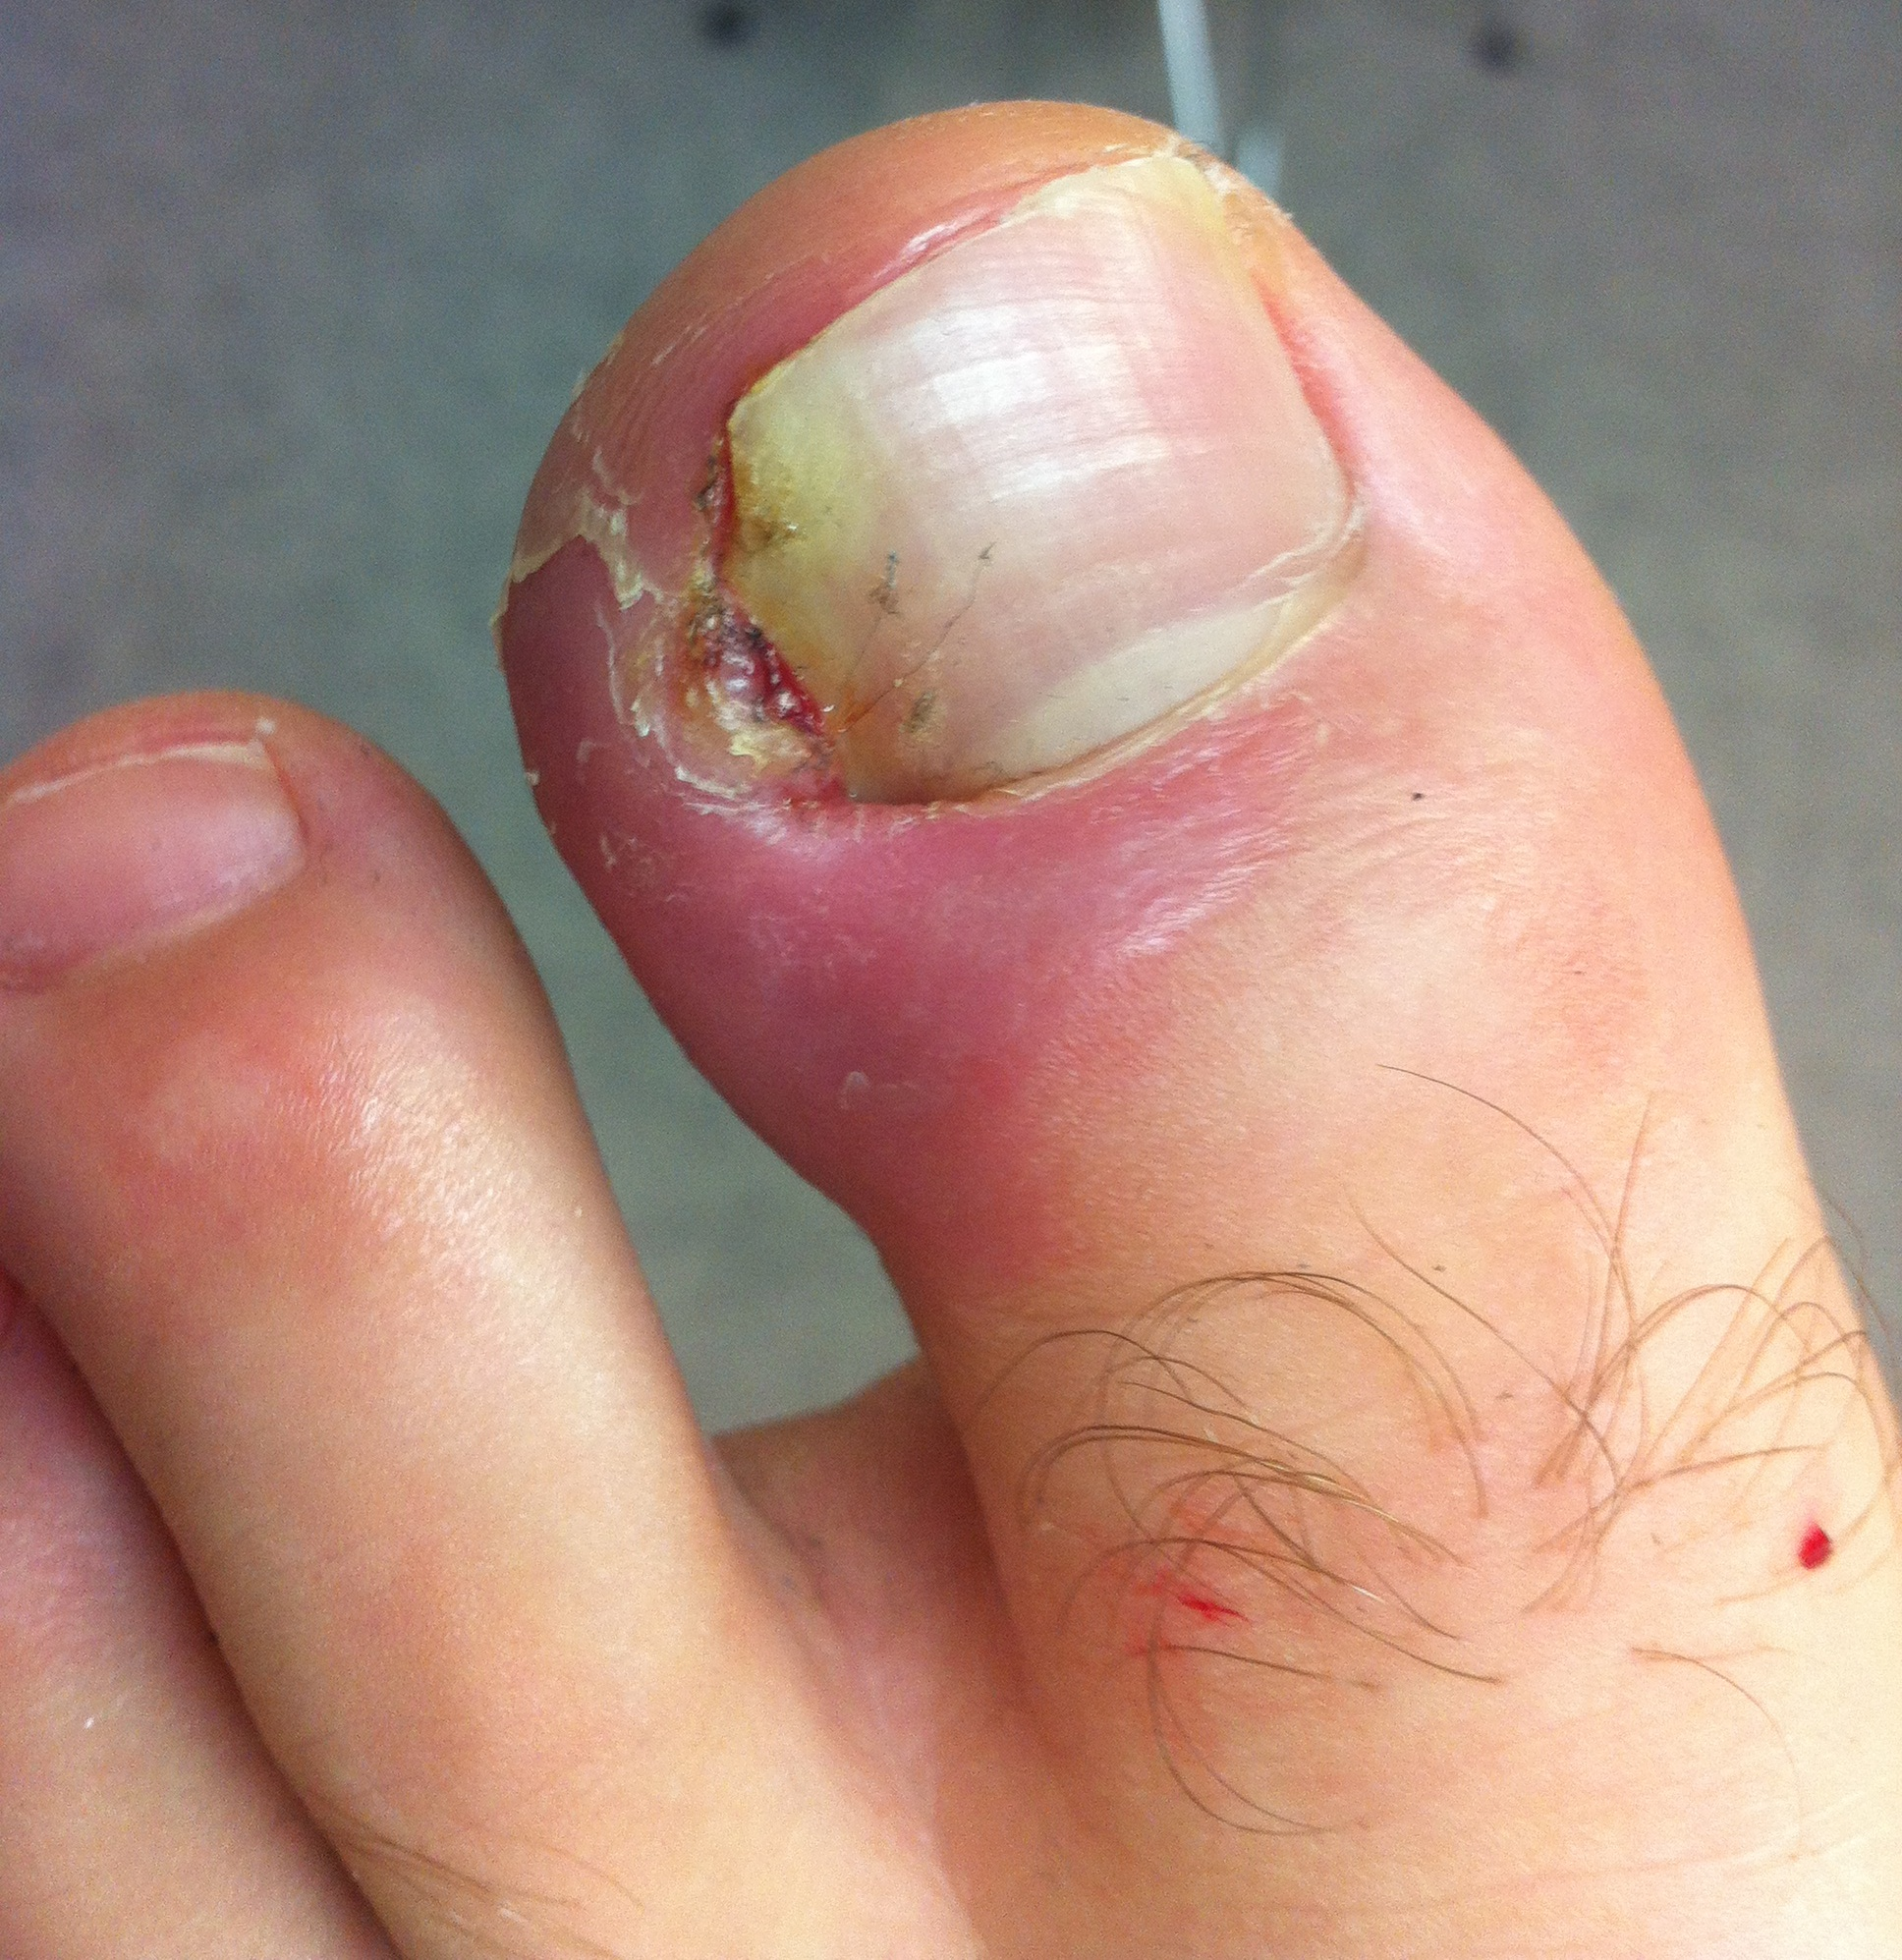 Ingrown Toenail Causes, Home Remedies, and Treatment